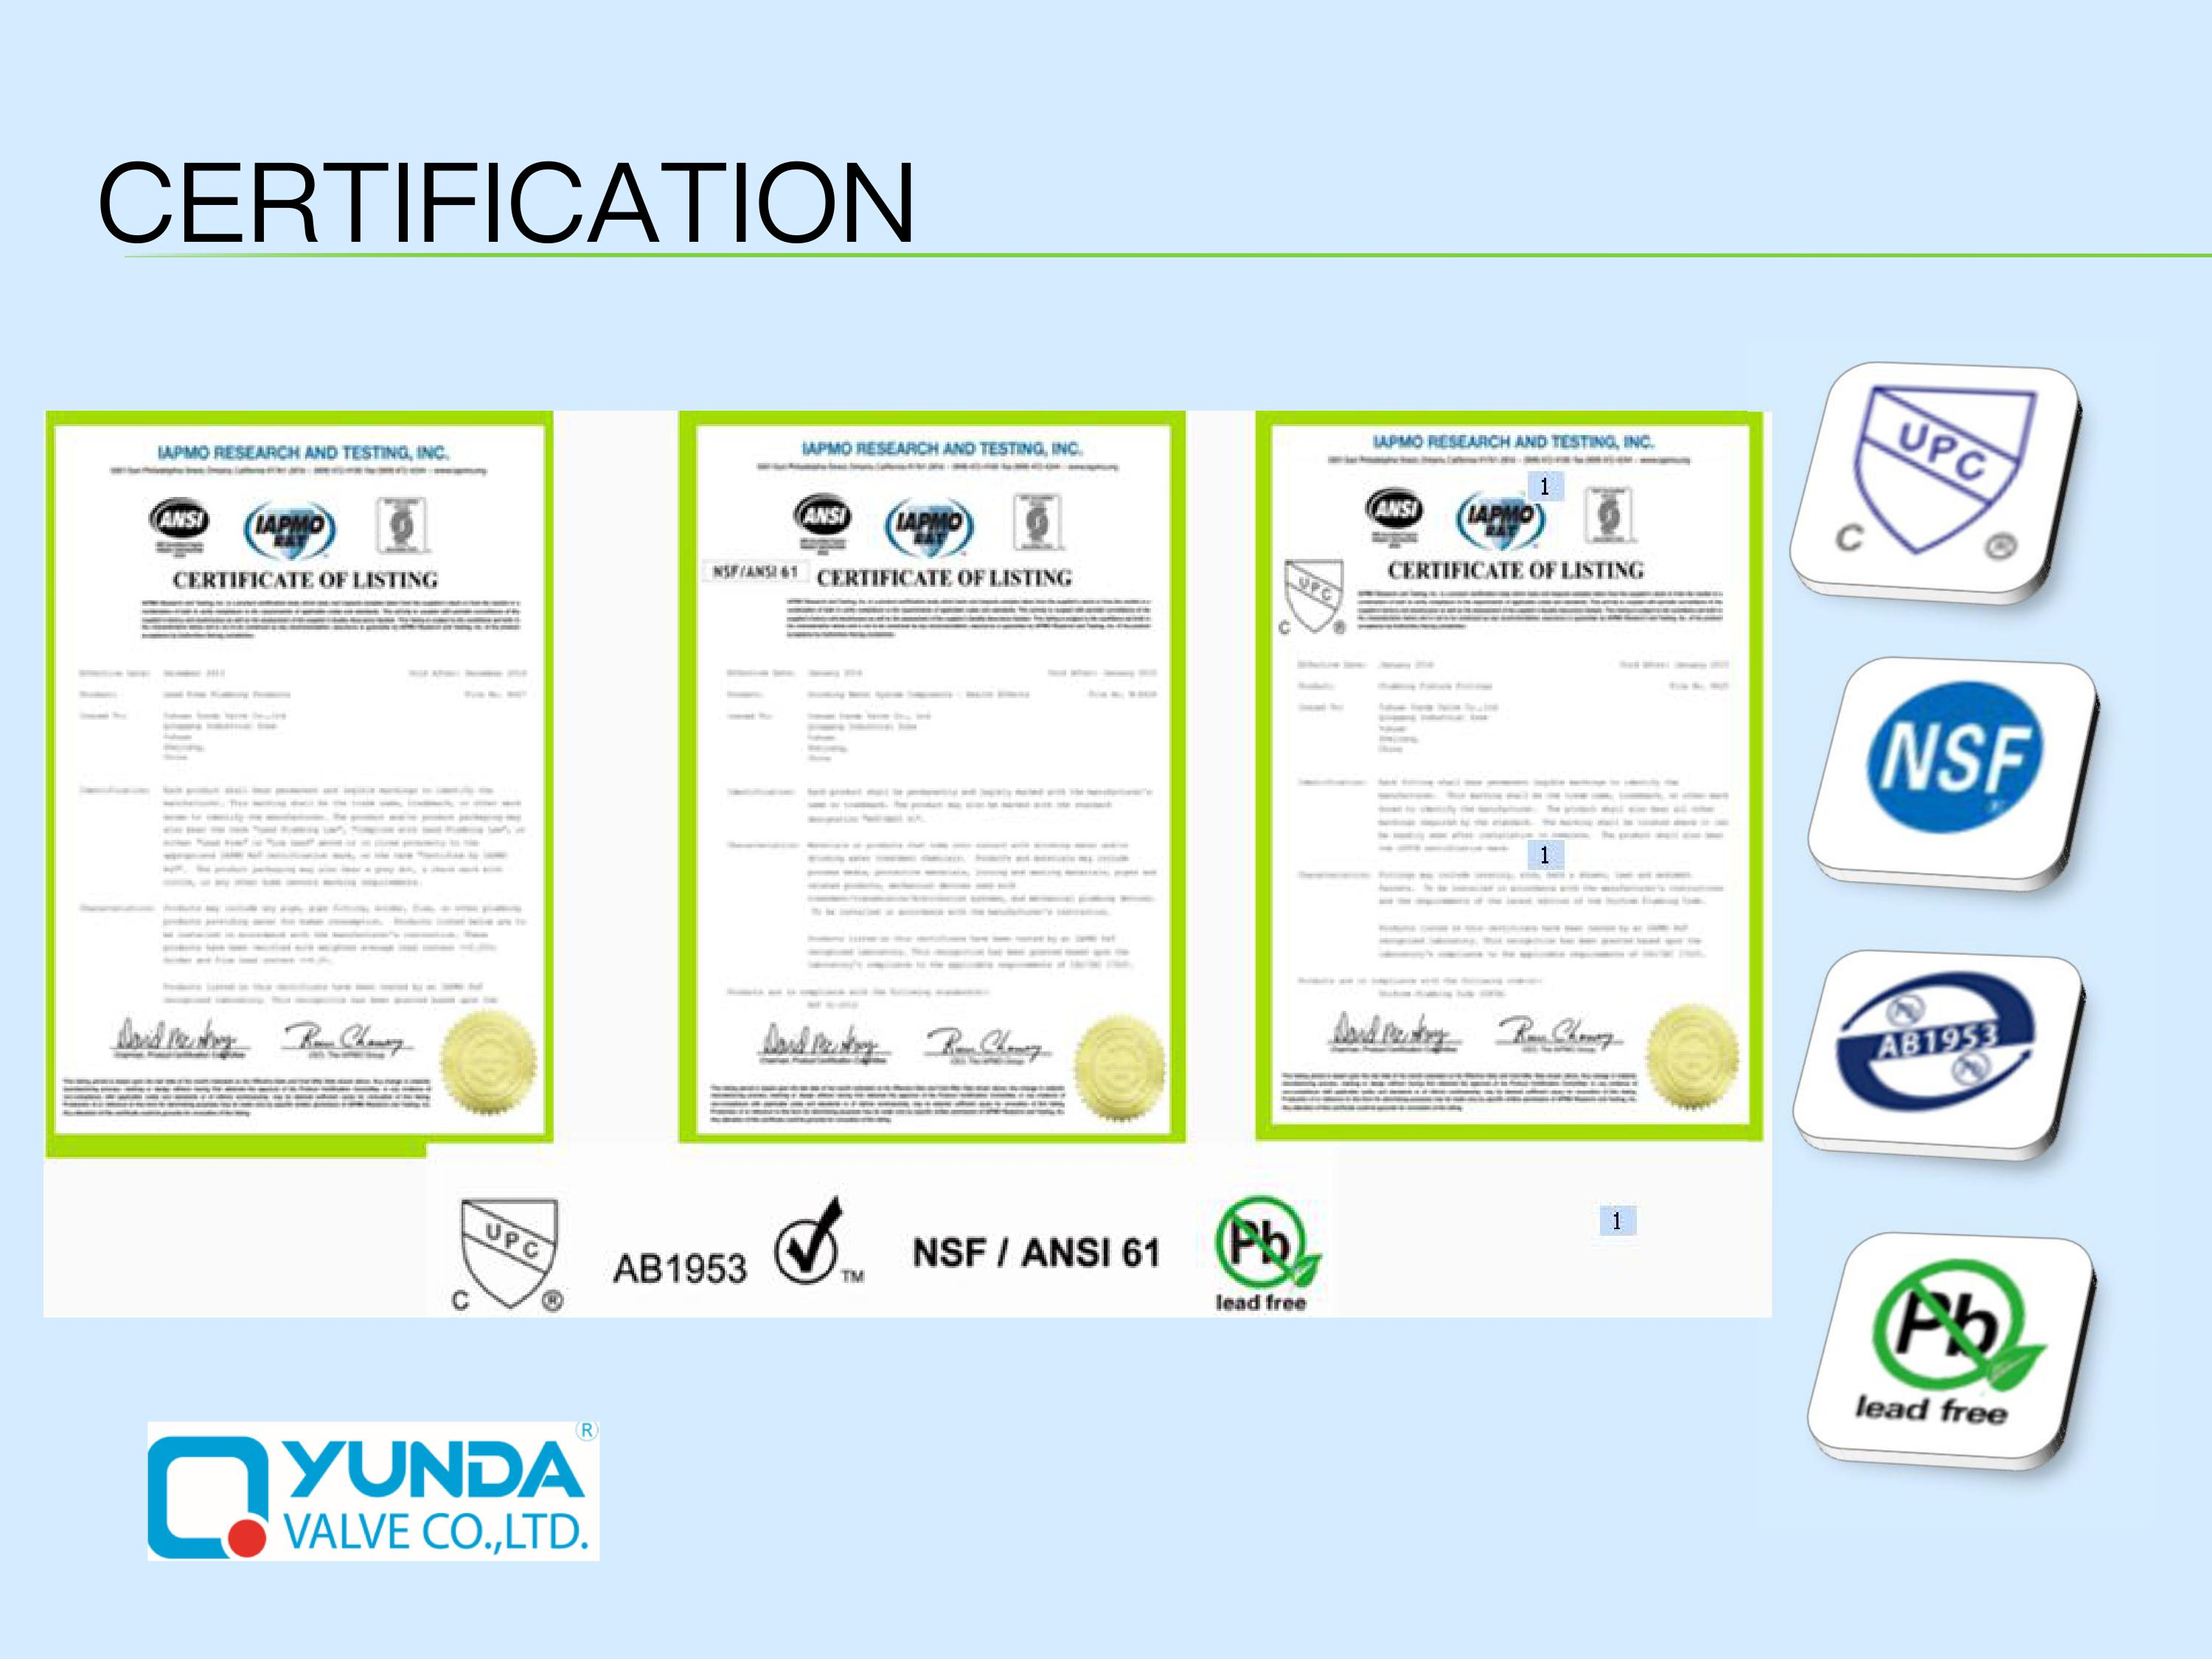 cupc certification for us market certifications